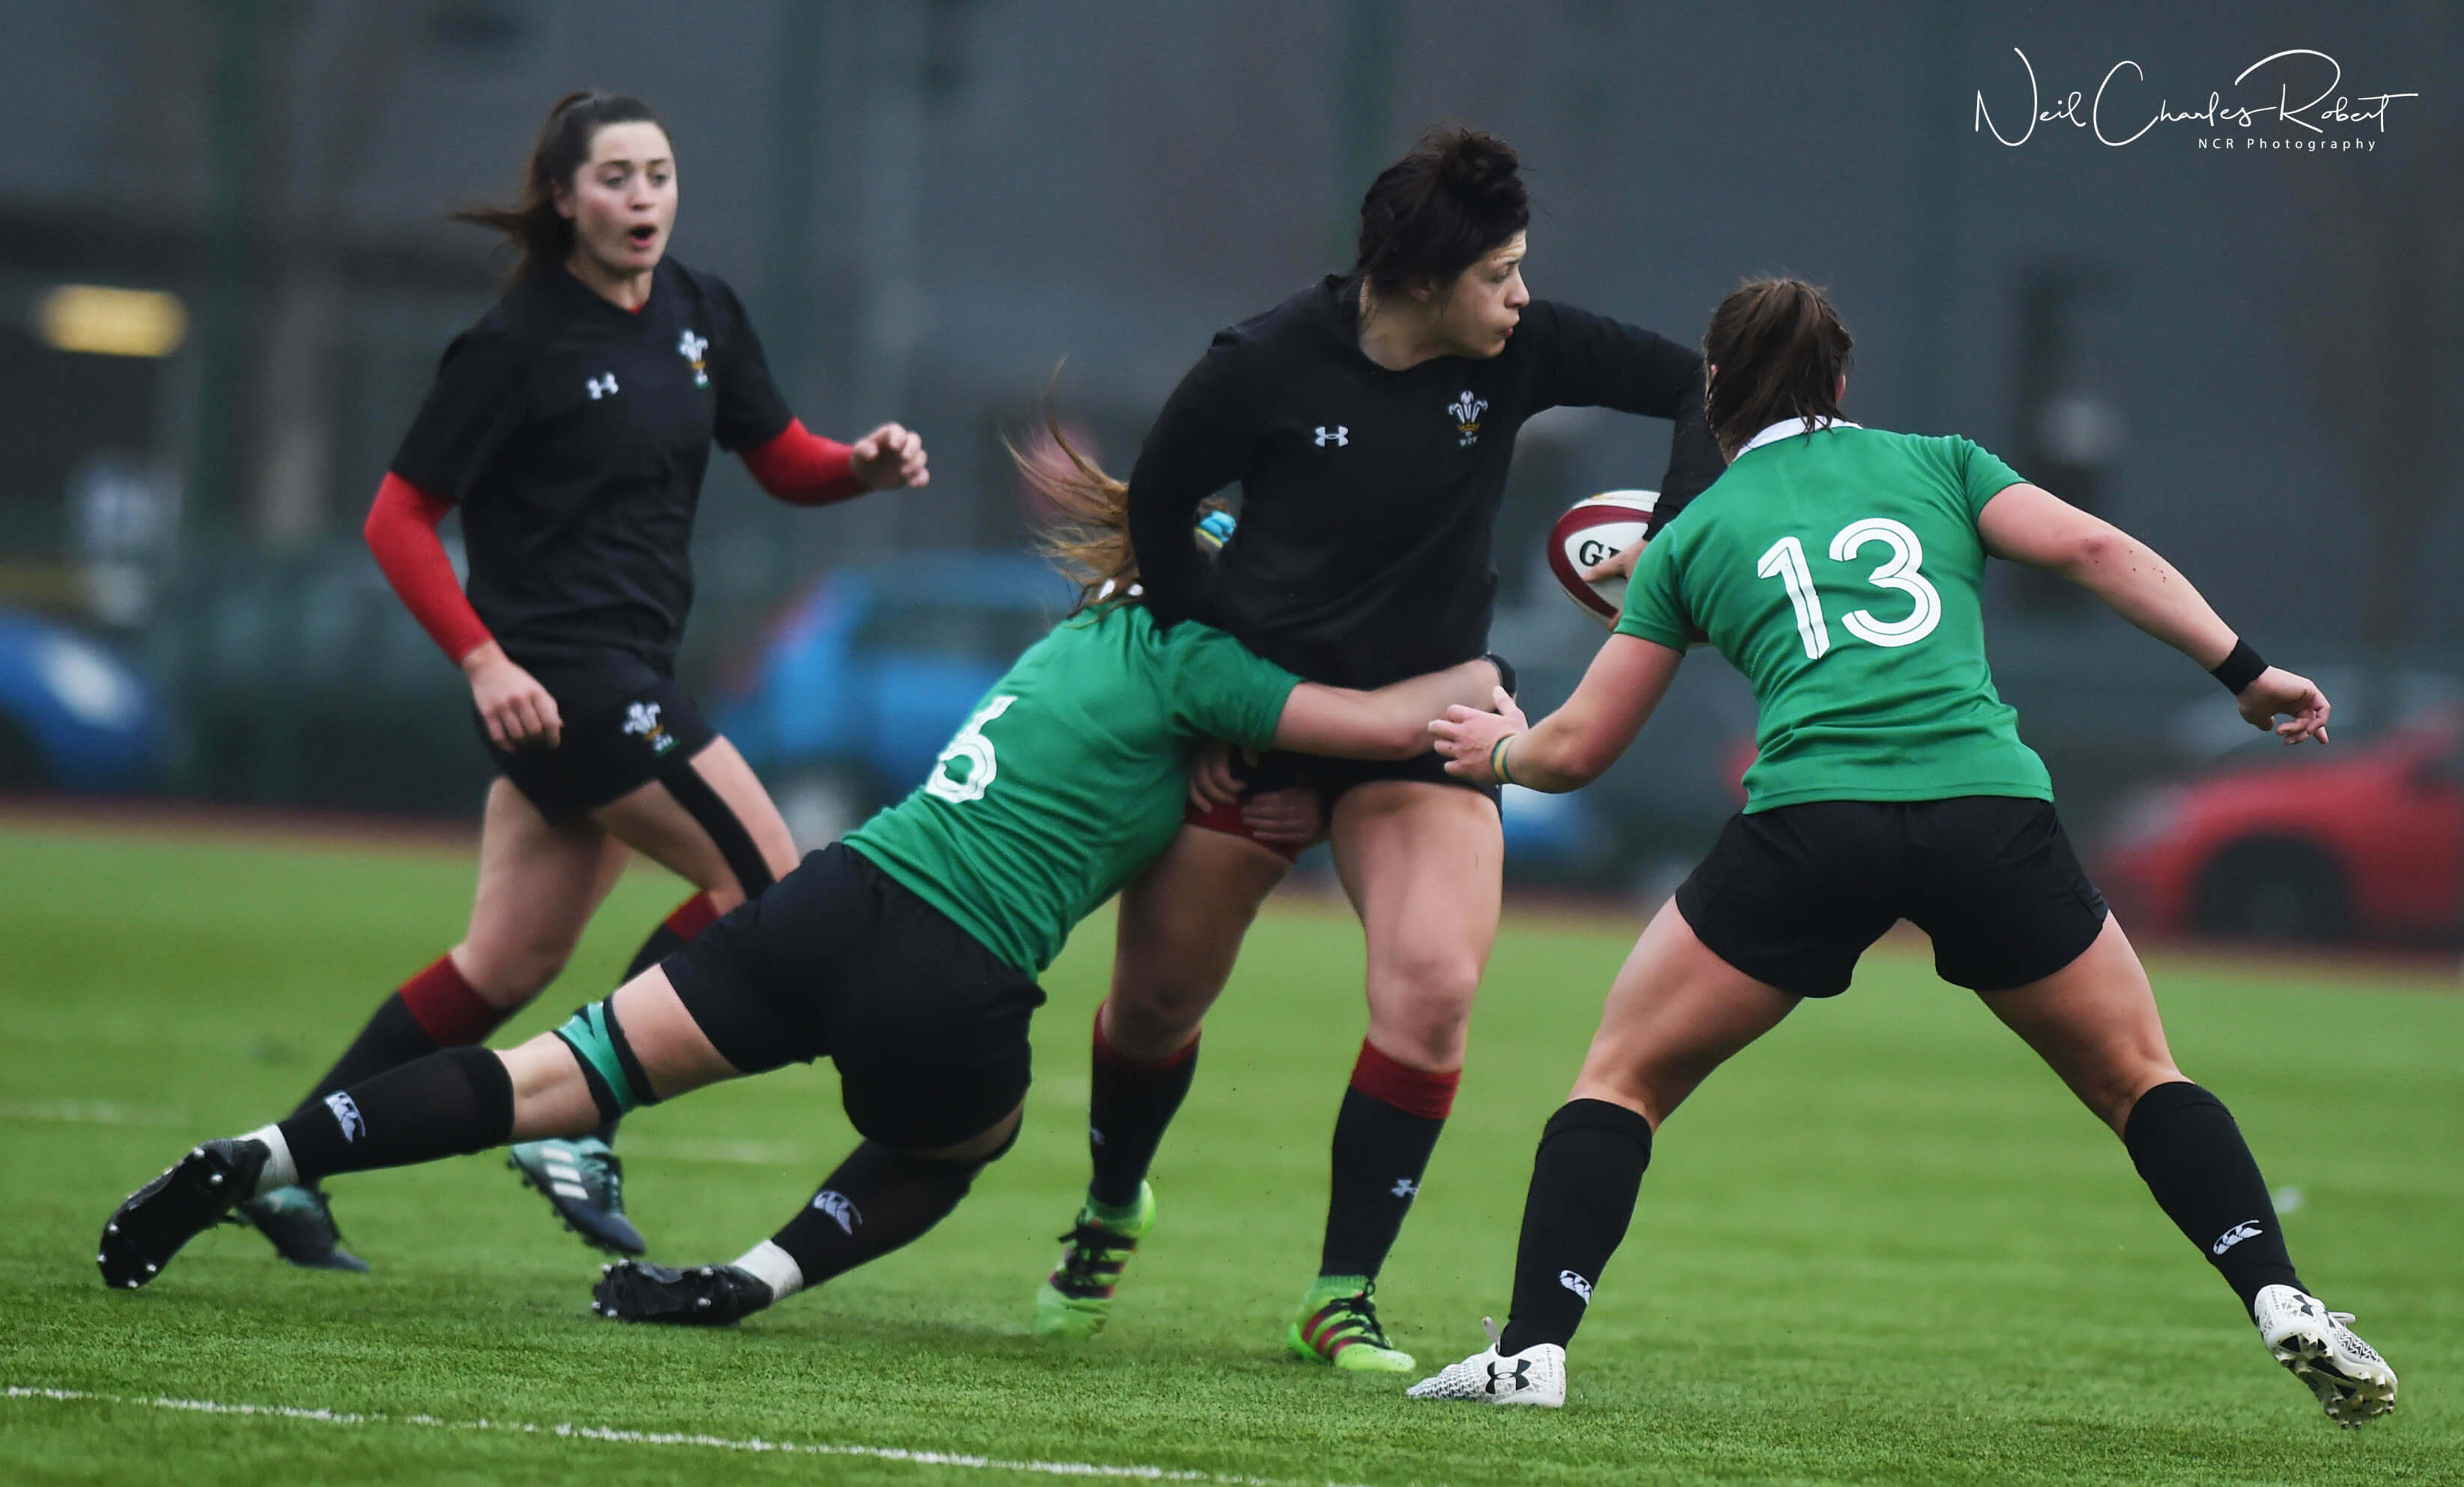 Ireland women play against the Welsh womens team in the womens 6 Nations. Photo credit: Neil Charles Roberts